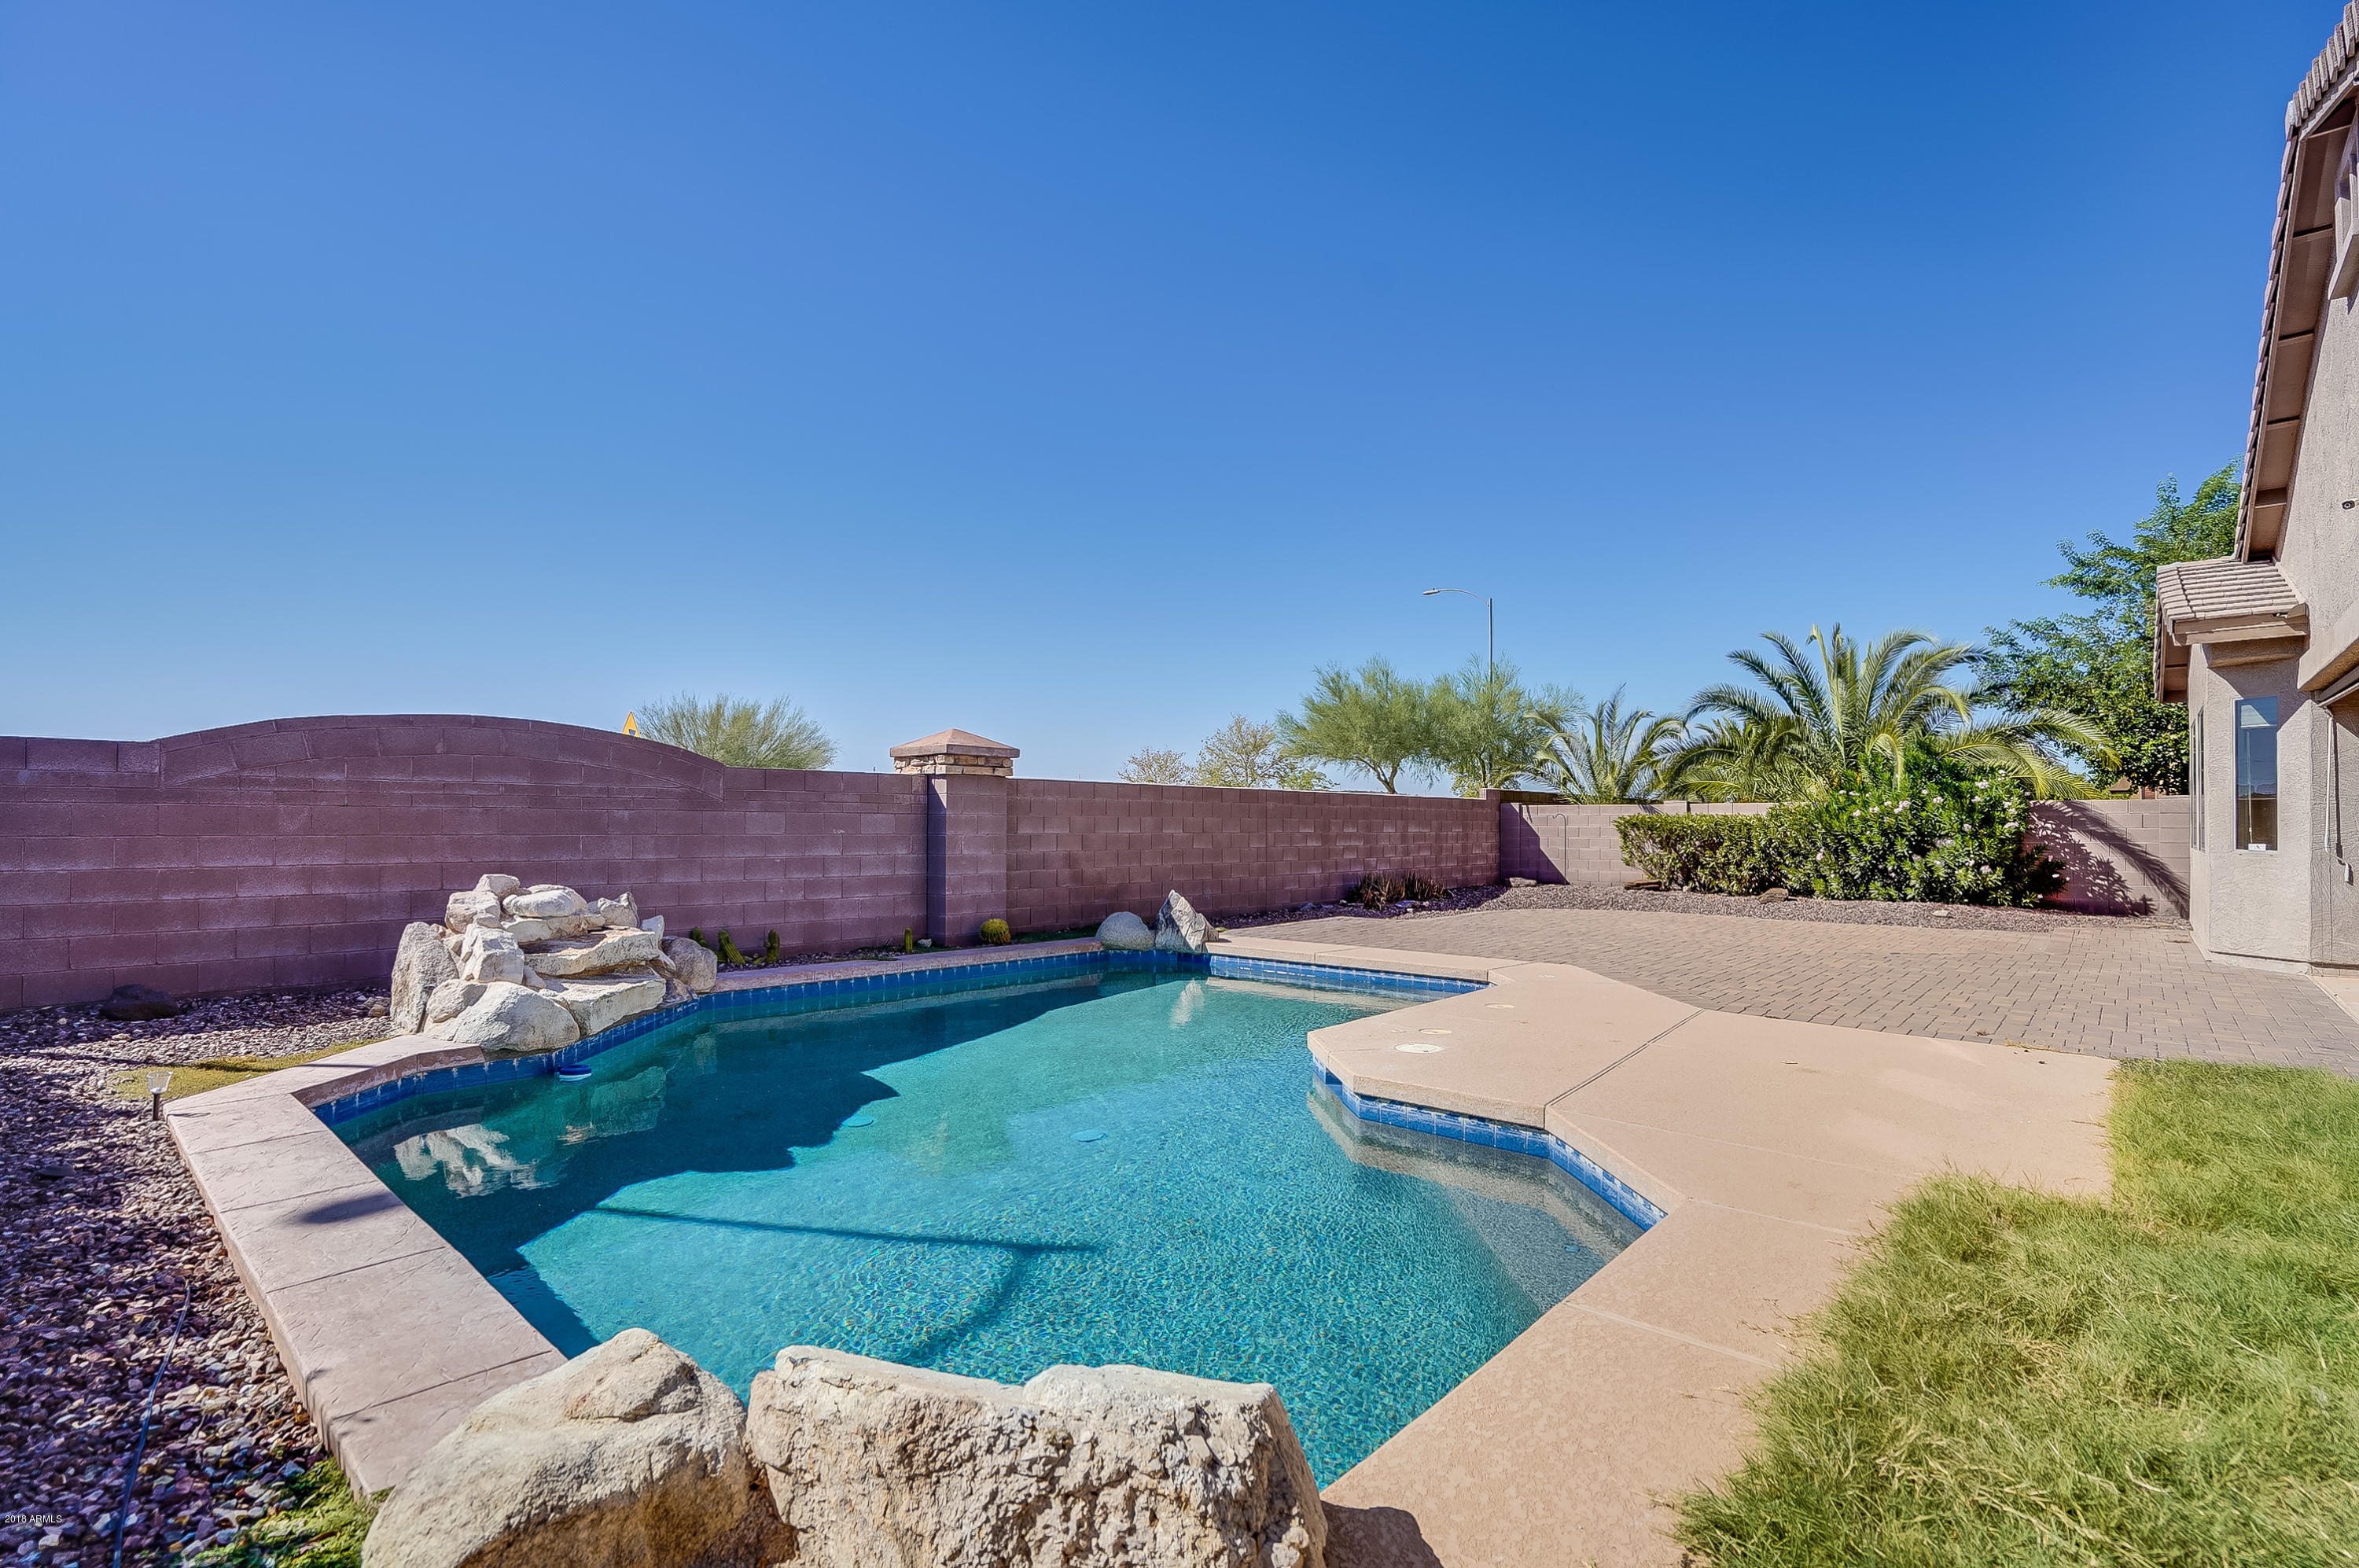 MLS 5826577 26806 N 24TH Lane, Phoenix, AZ 85085 Phoenix AZ Valley Vista